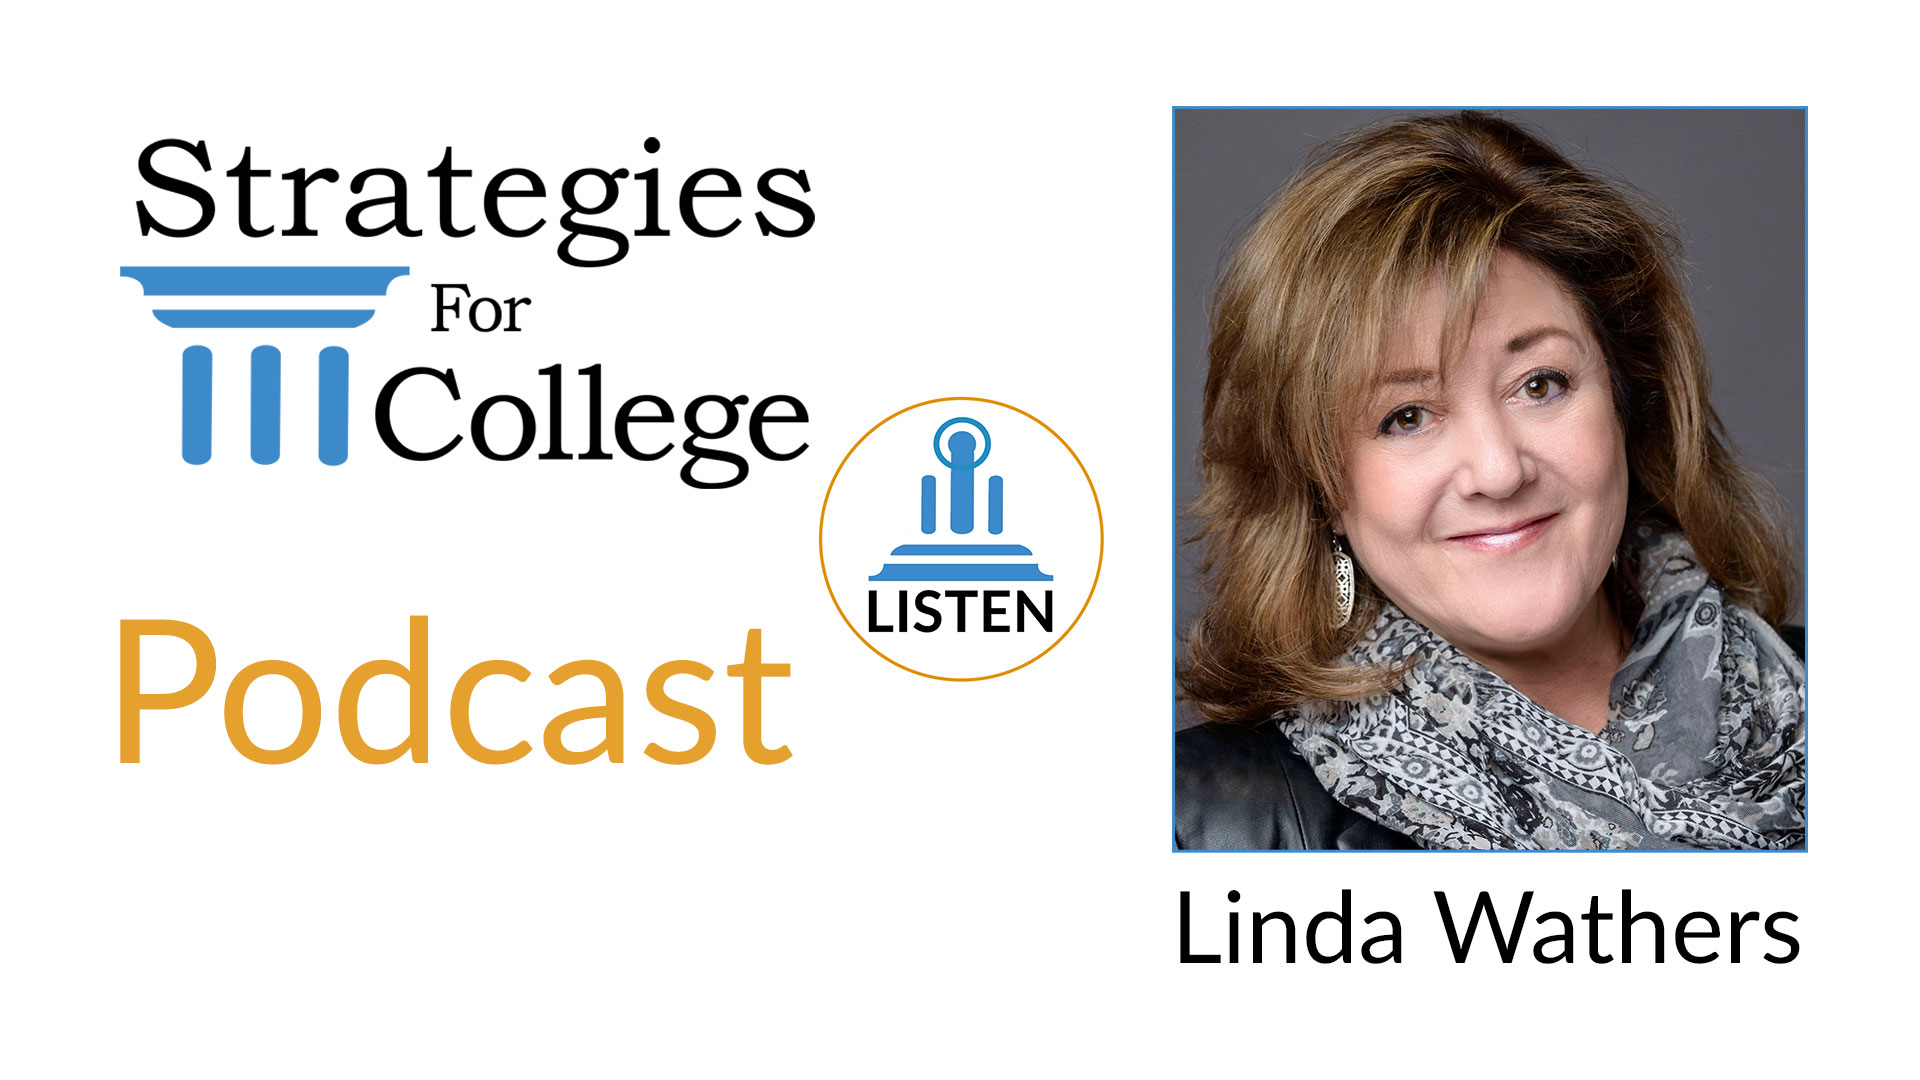 Podcast: Linda Waters